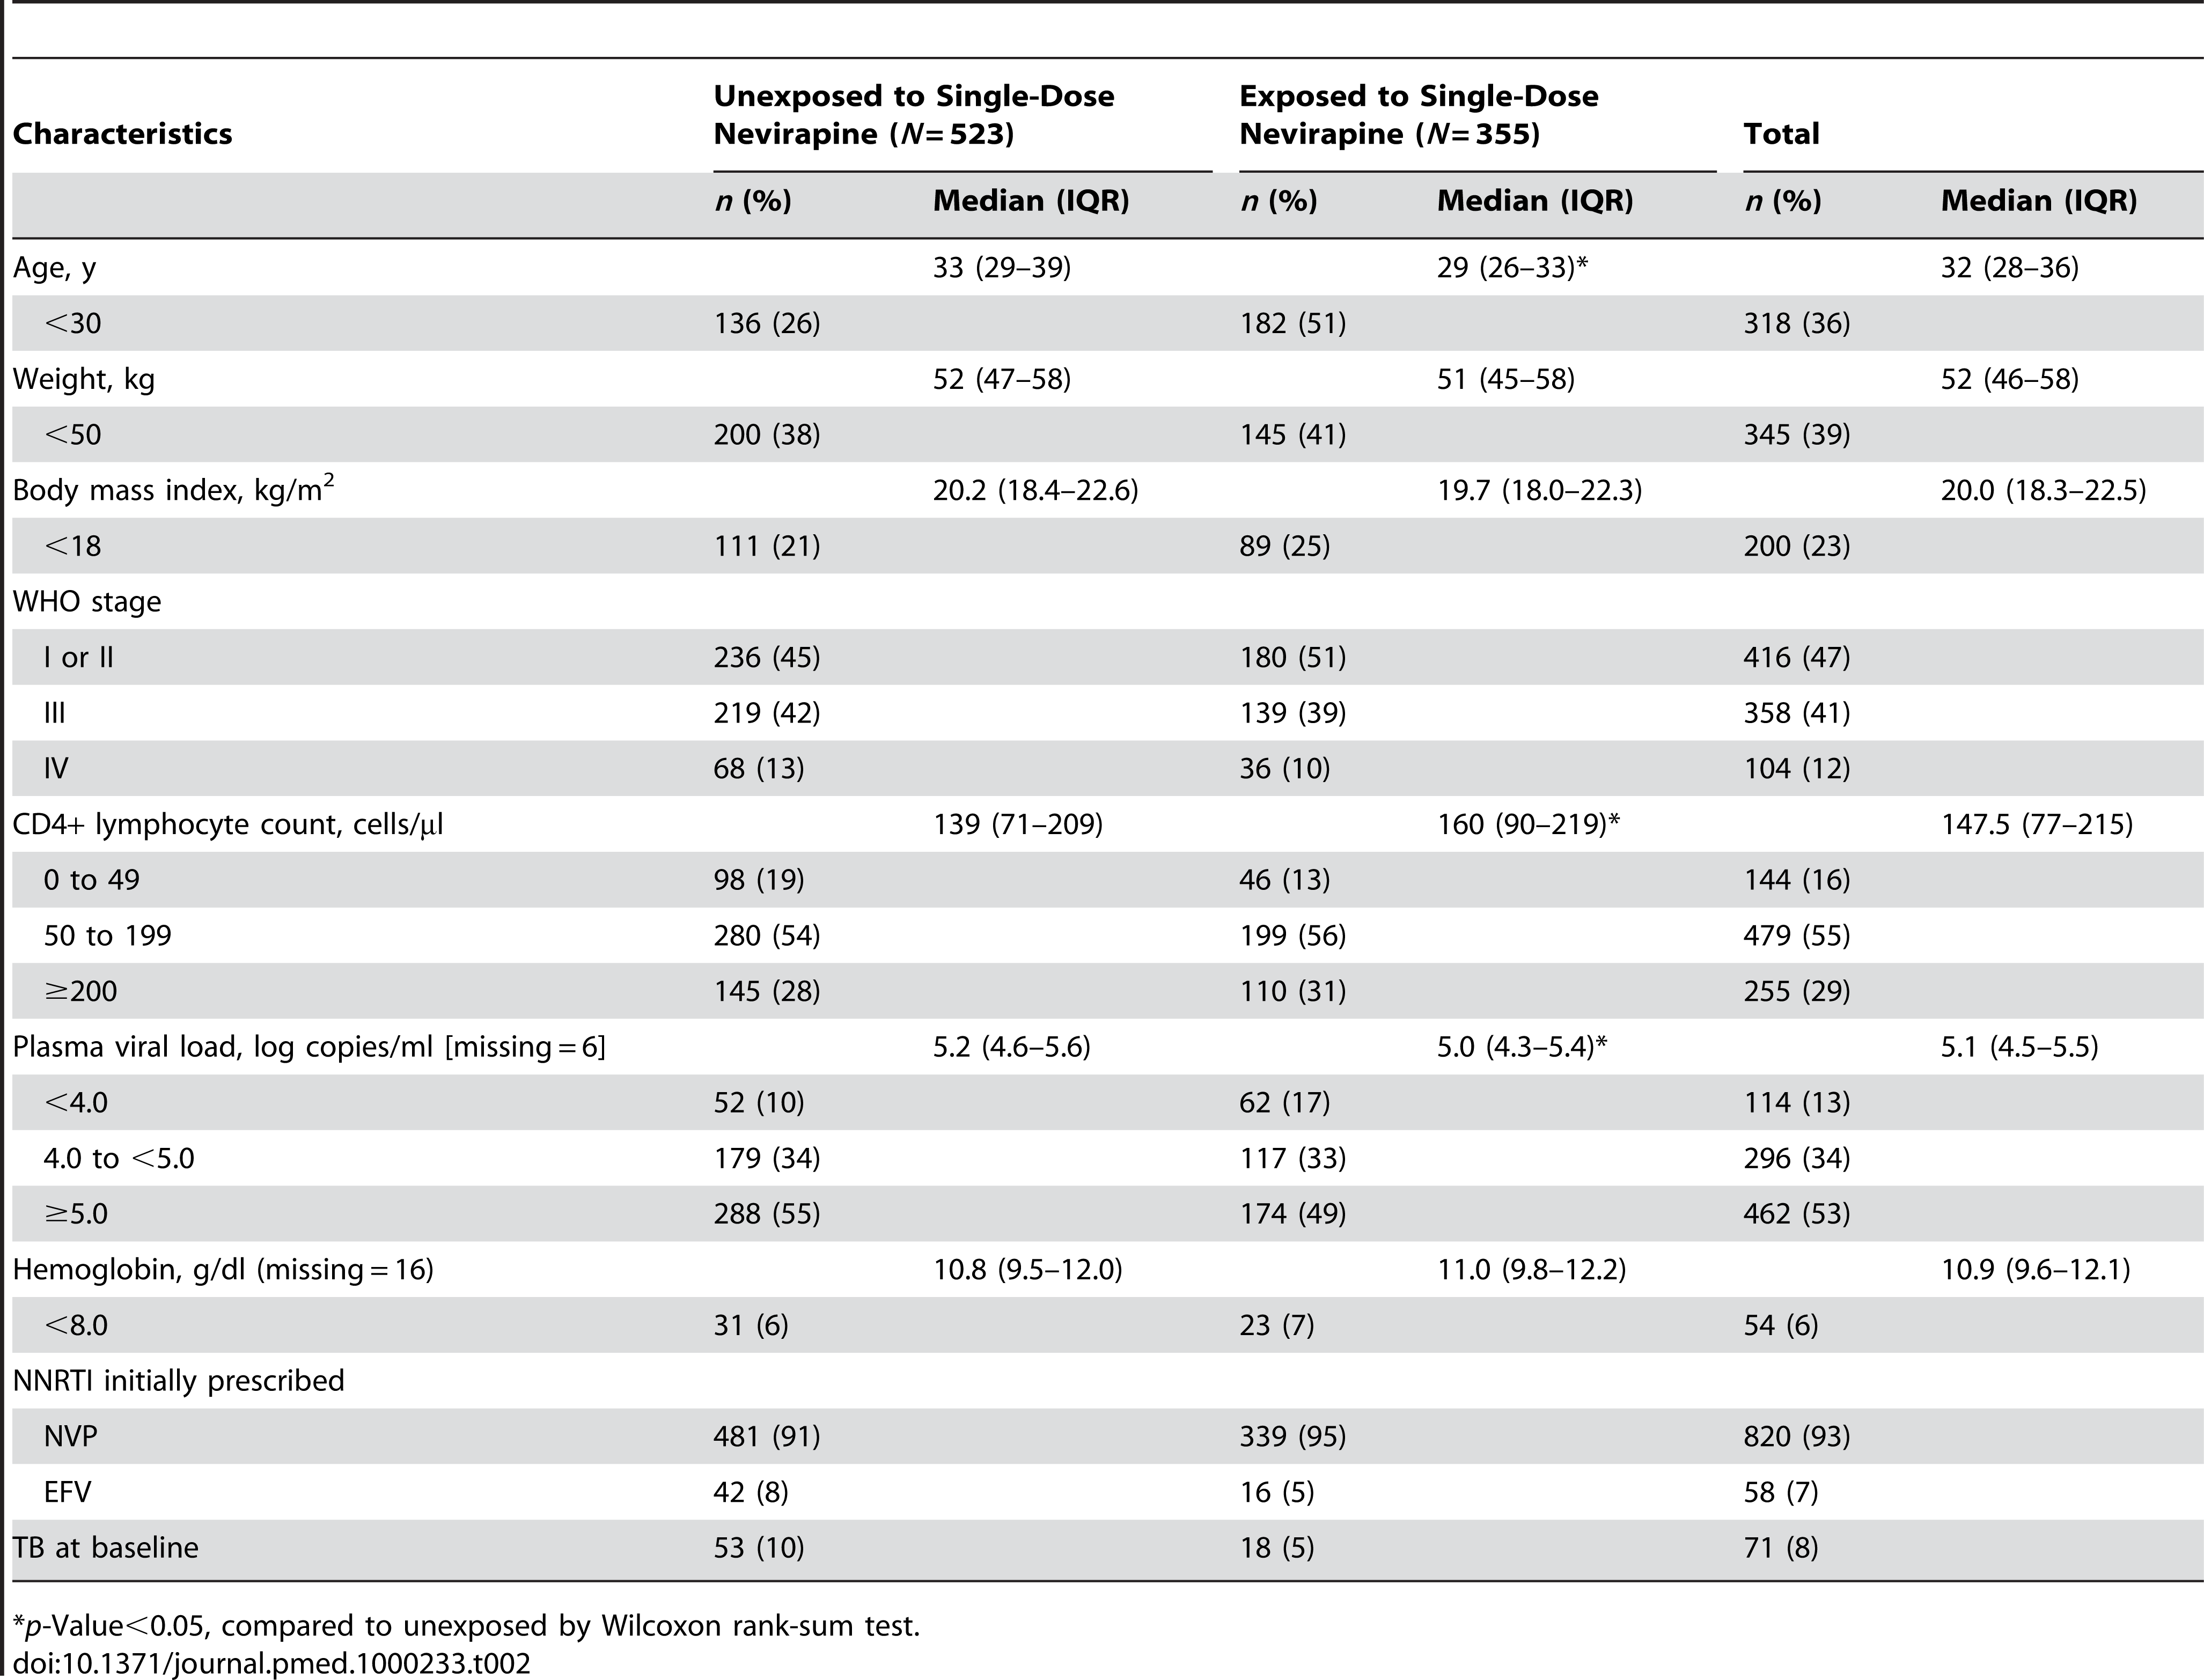 Baseline characteristics of participants enrolled by prior exposure to single-dose nevirapine in the NNRTI Response Study—Zambia, Kenya, Thailand (2005–2008).